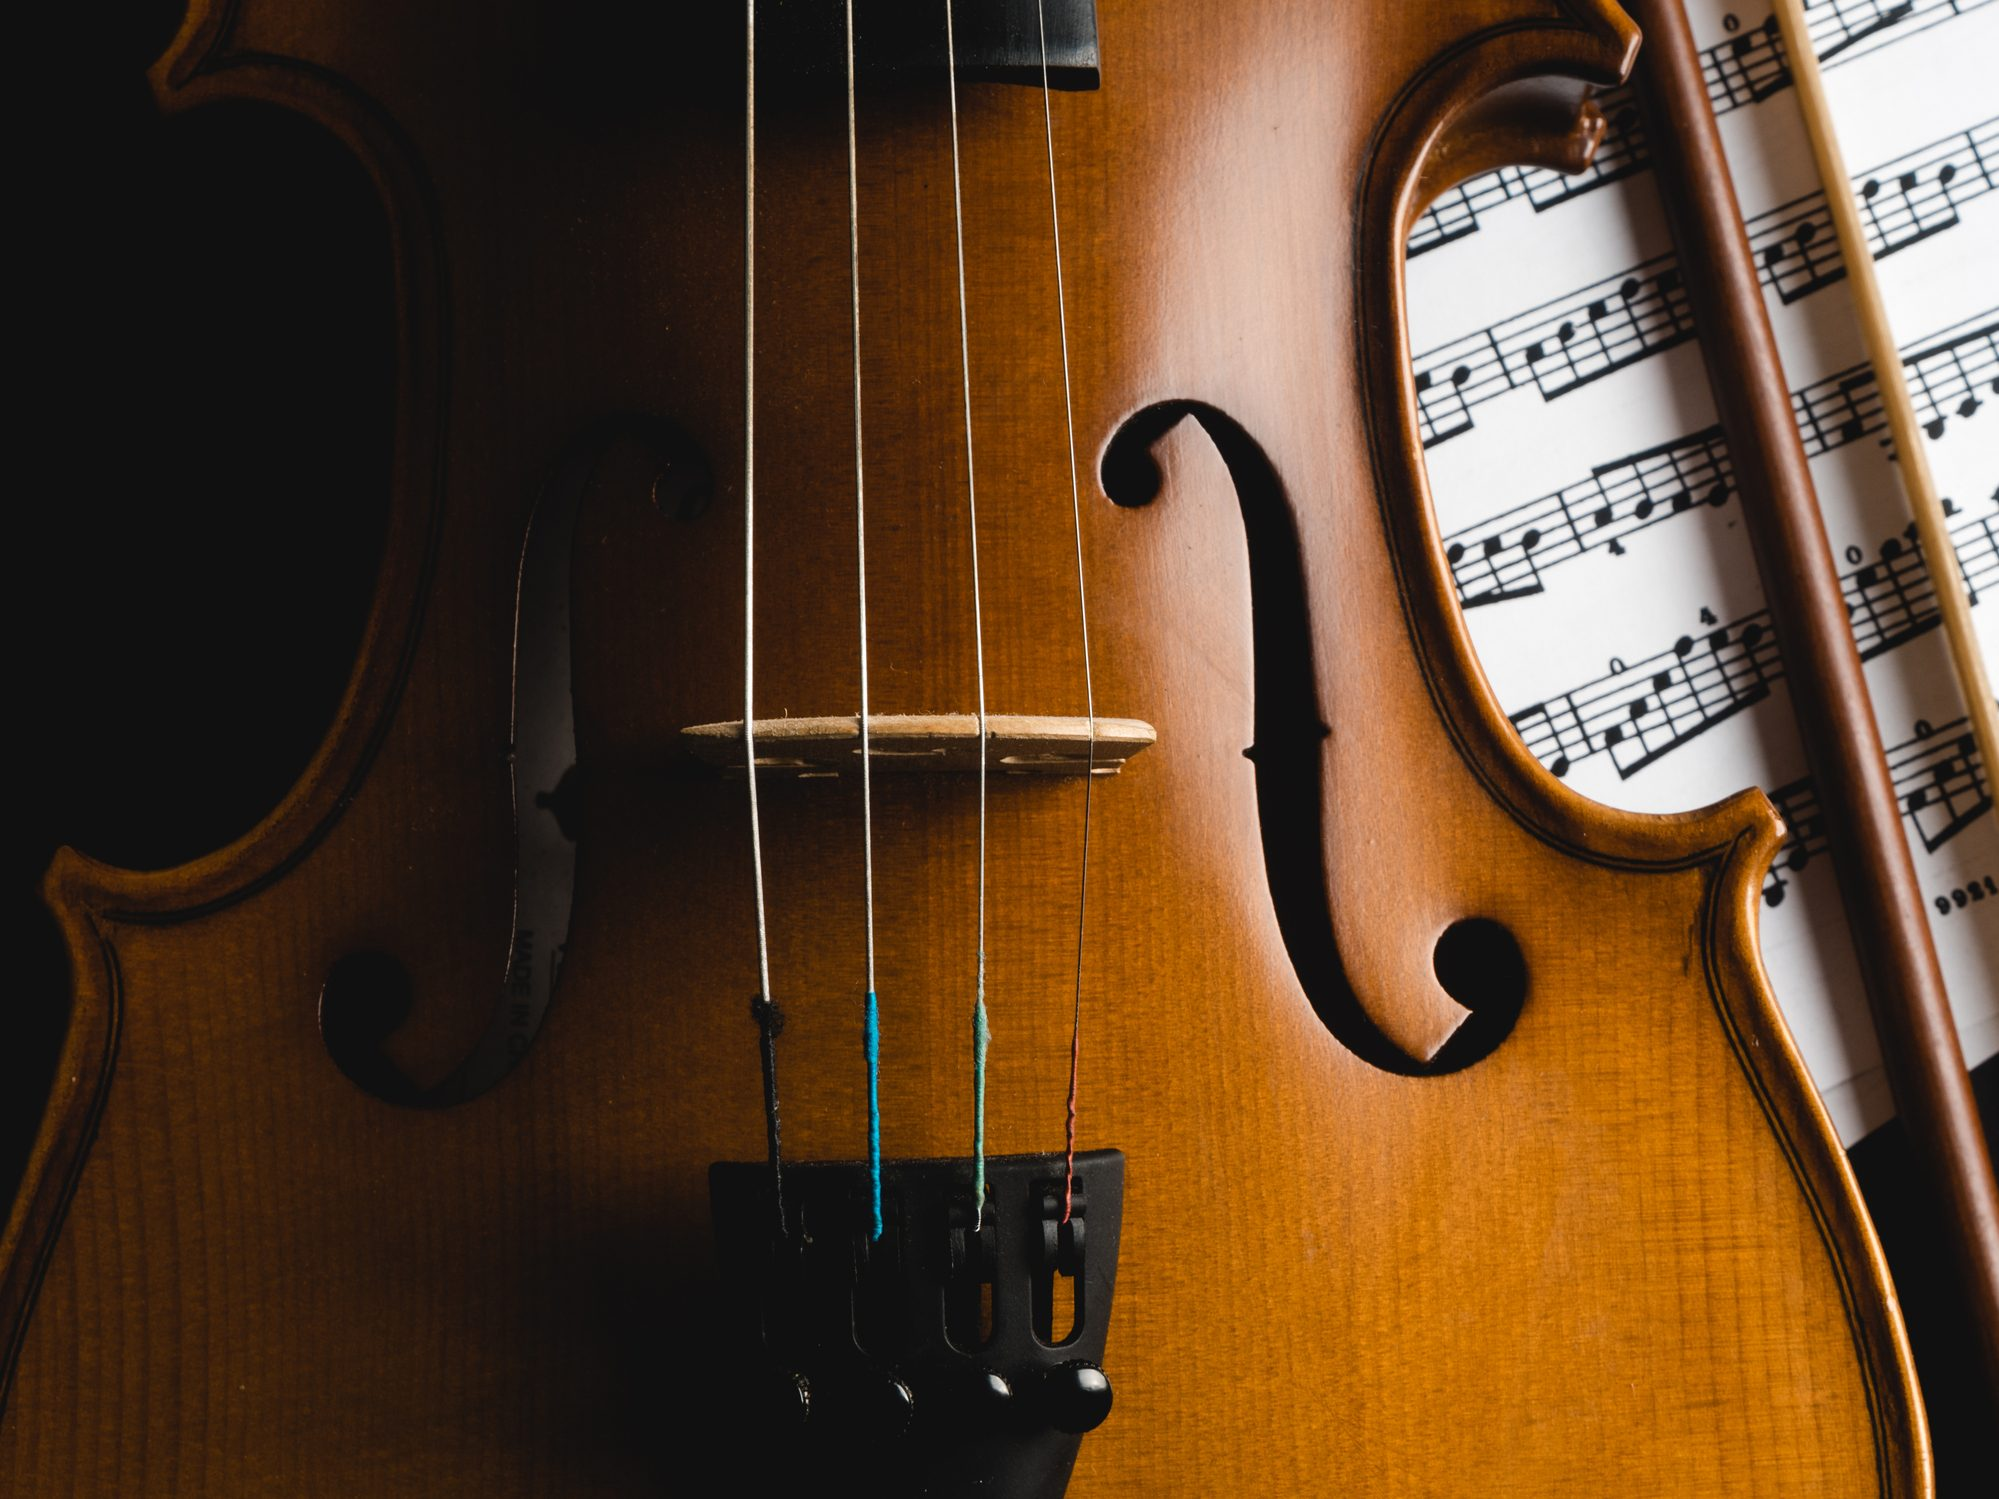 Cropped Image Of Violin against Black Background with sheet music and bow